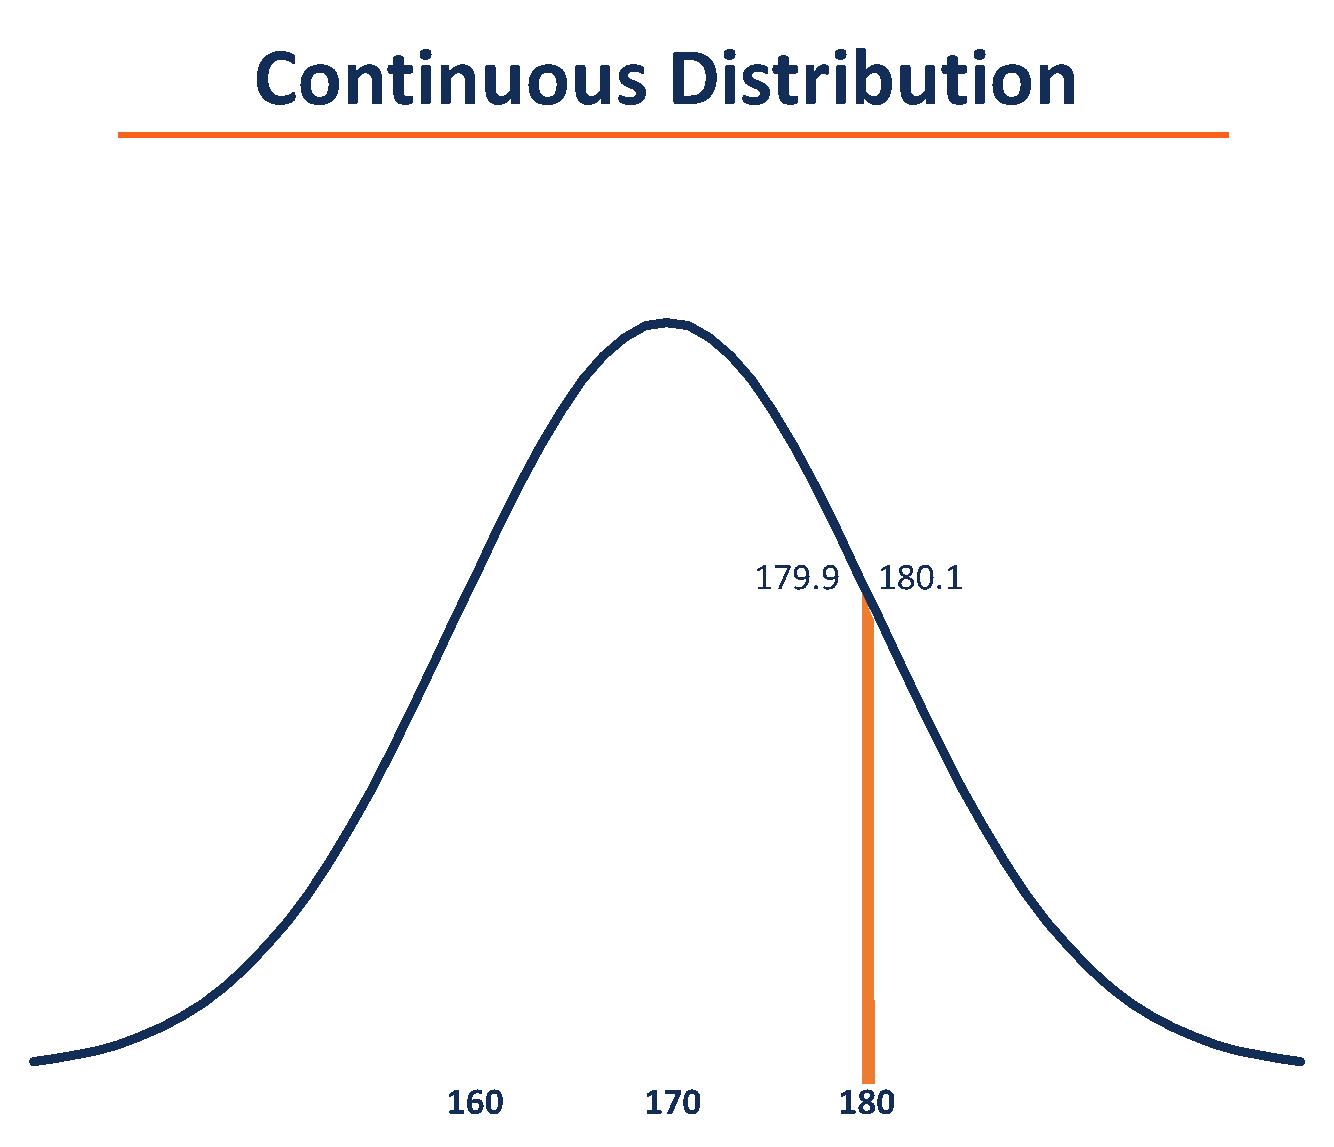 Awesome Discrete Probability Distribution In Research wallpapers to download for free greenvirals